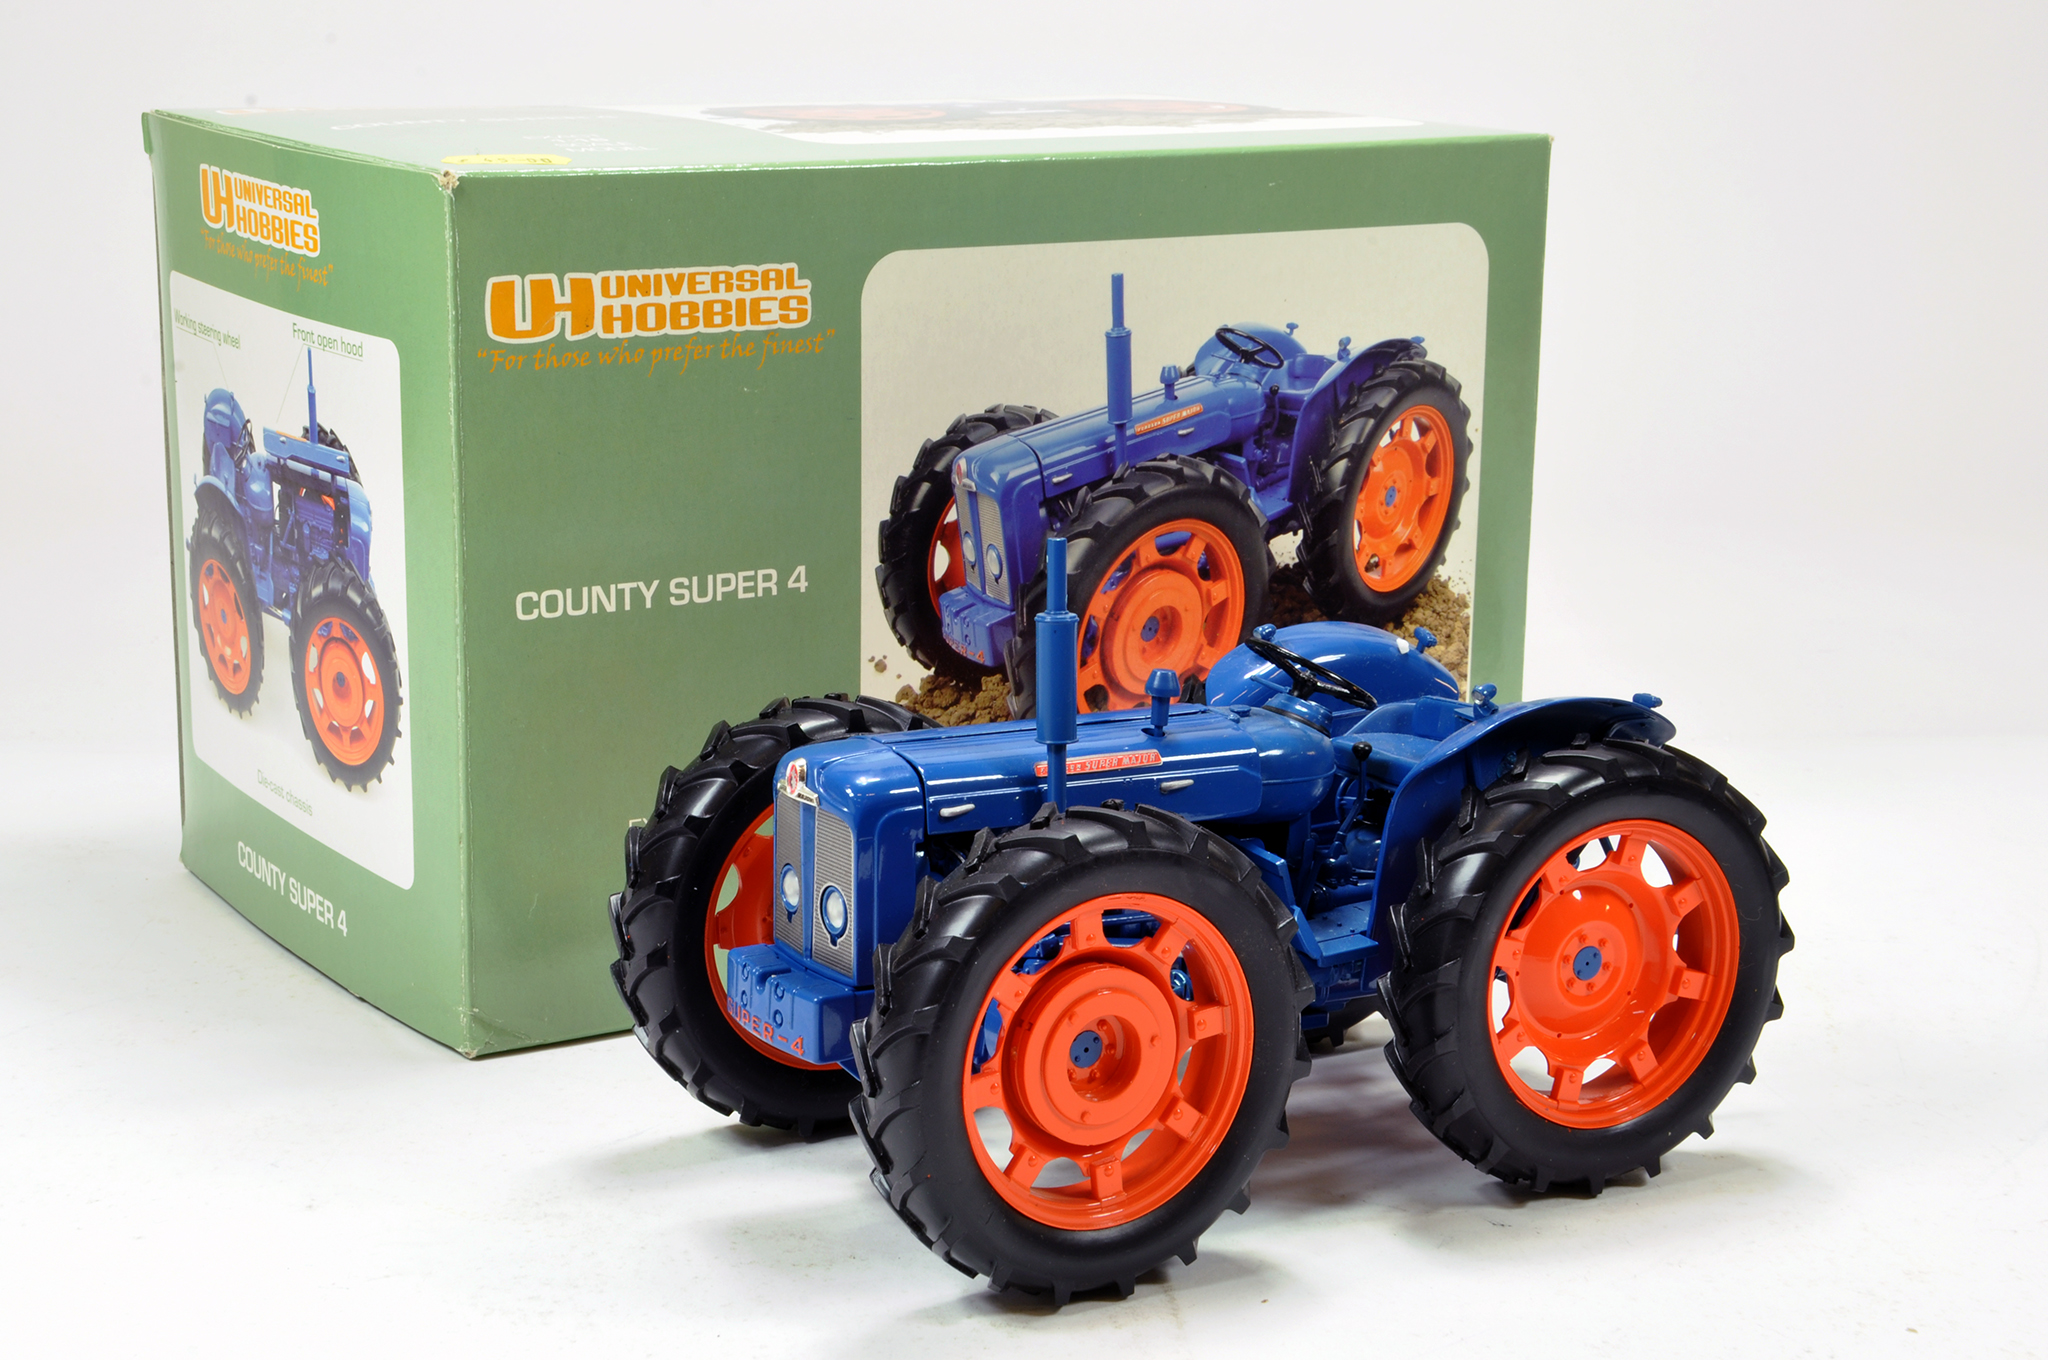 Lot 145 - Universal hobbies 1/16 County super 4 tractor. Generally excellent in box.